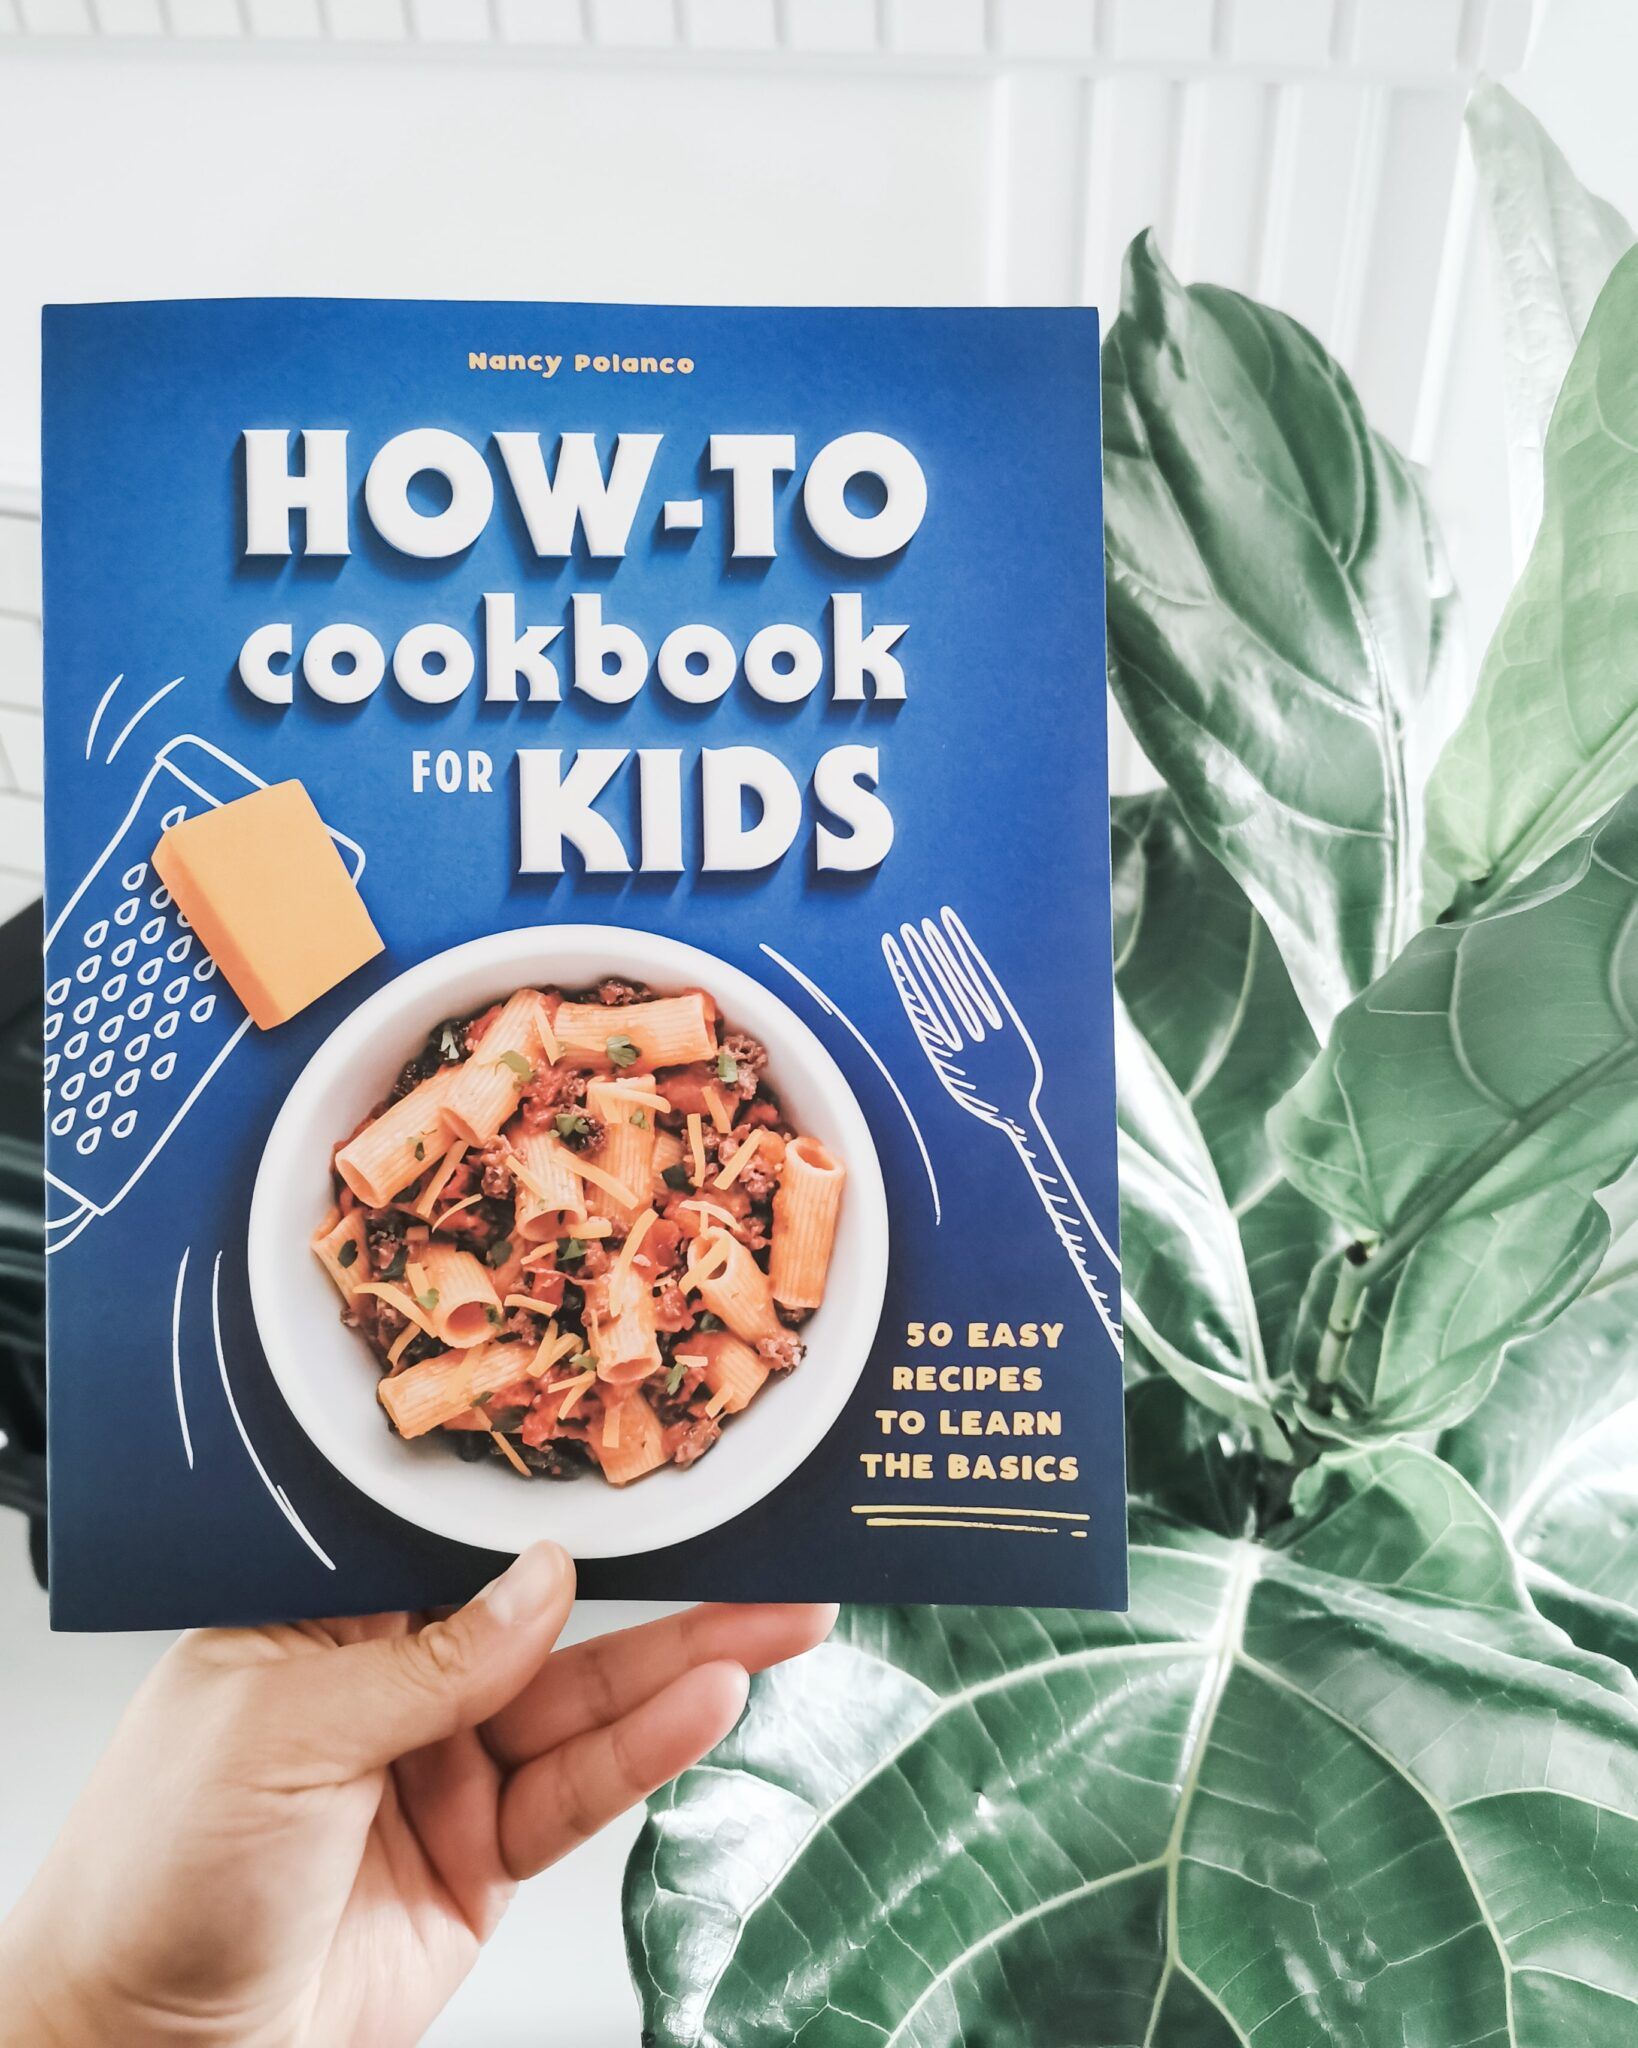 The new cookbook, How-To Cookbook for Kids is being held up against a fiddle leaf plant and a white fireplace.